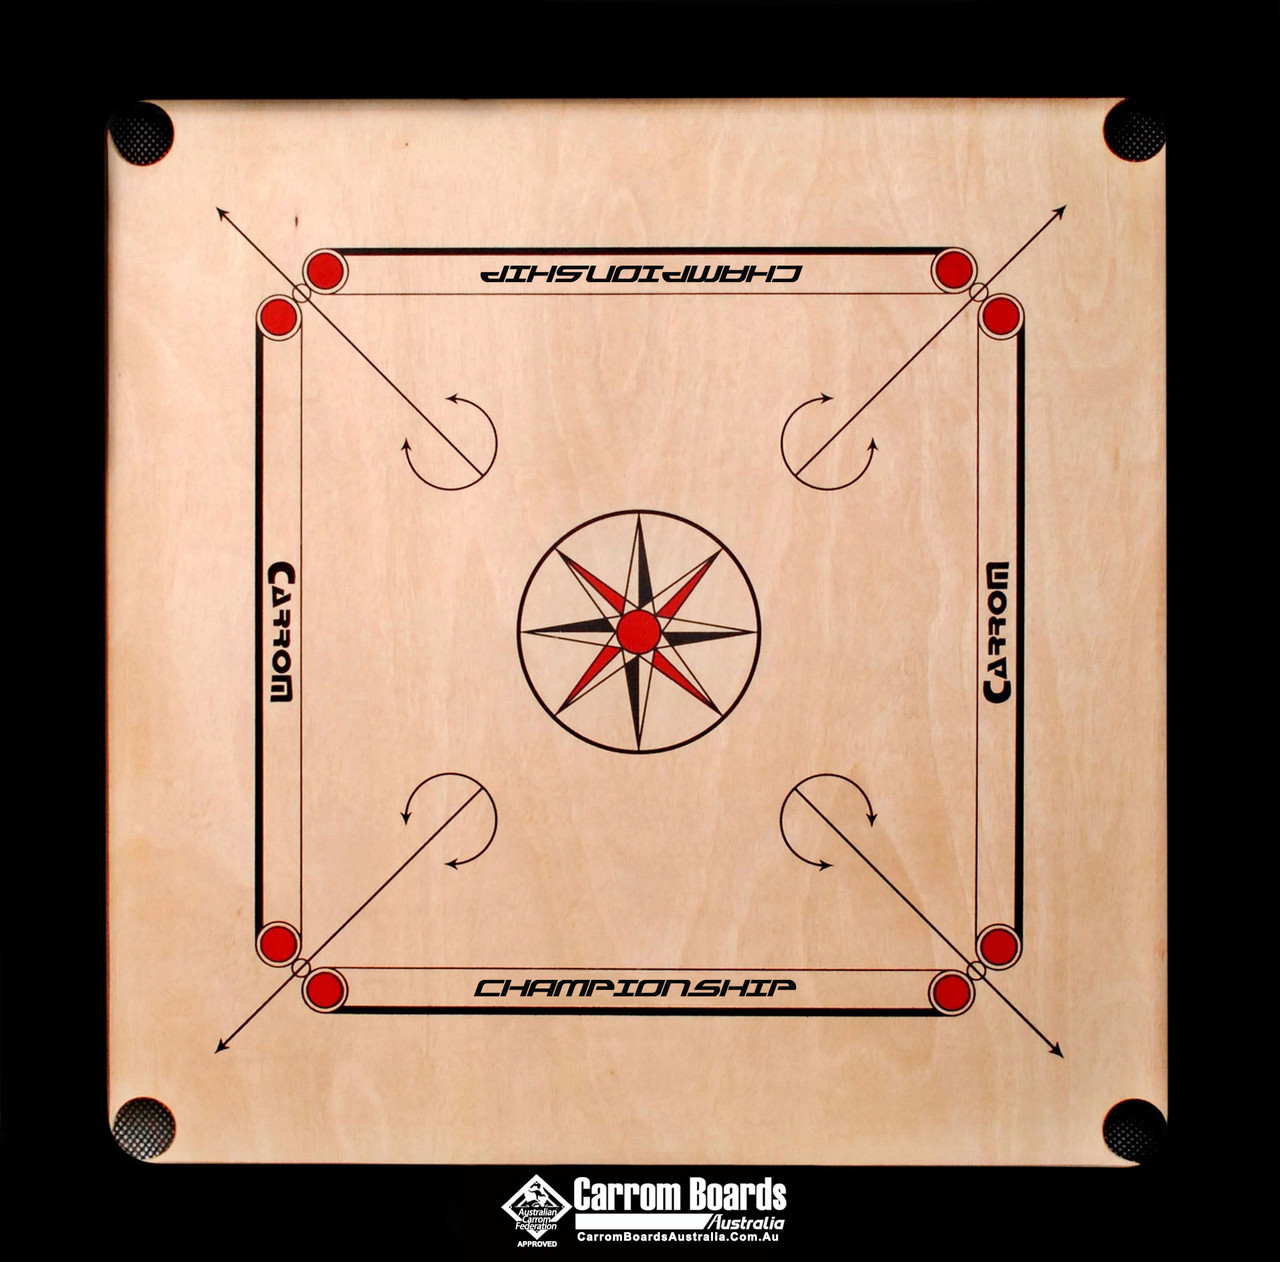 Carrom Board 89cmx89cm CHAMPIONSHIP BLACK & REGULATION STAND PLUS FREE PACKAGE OFFERS